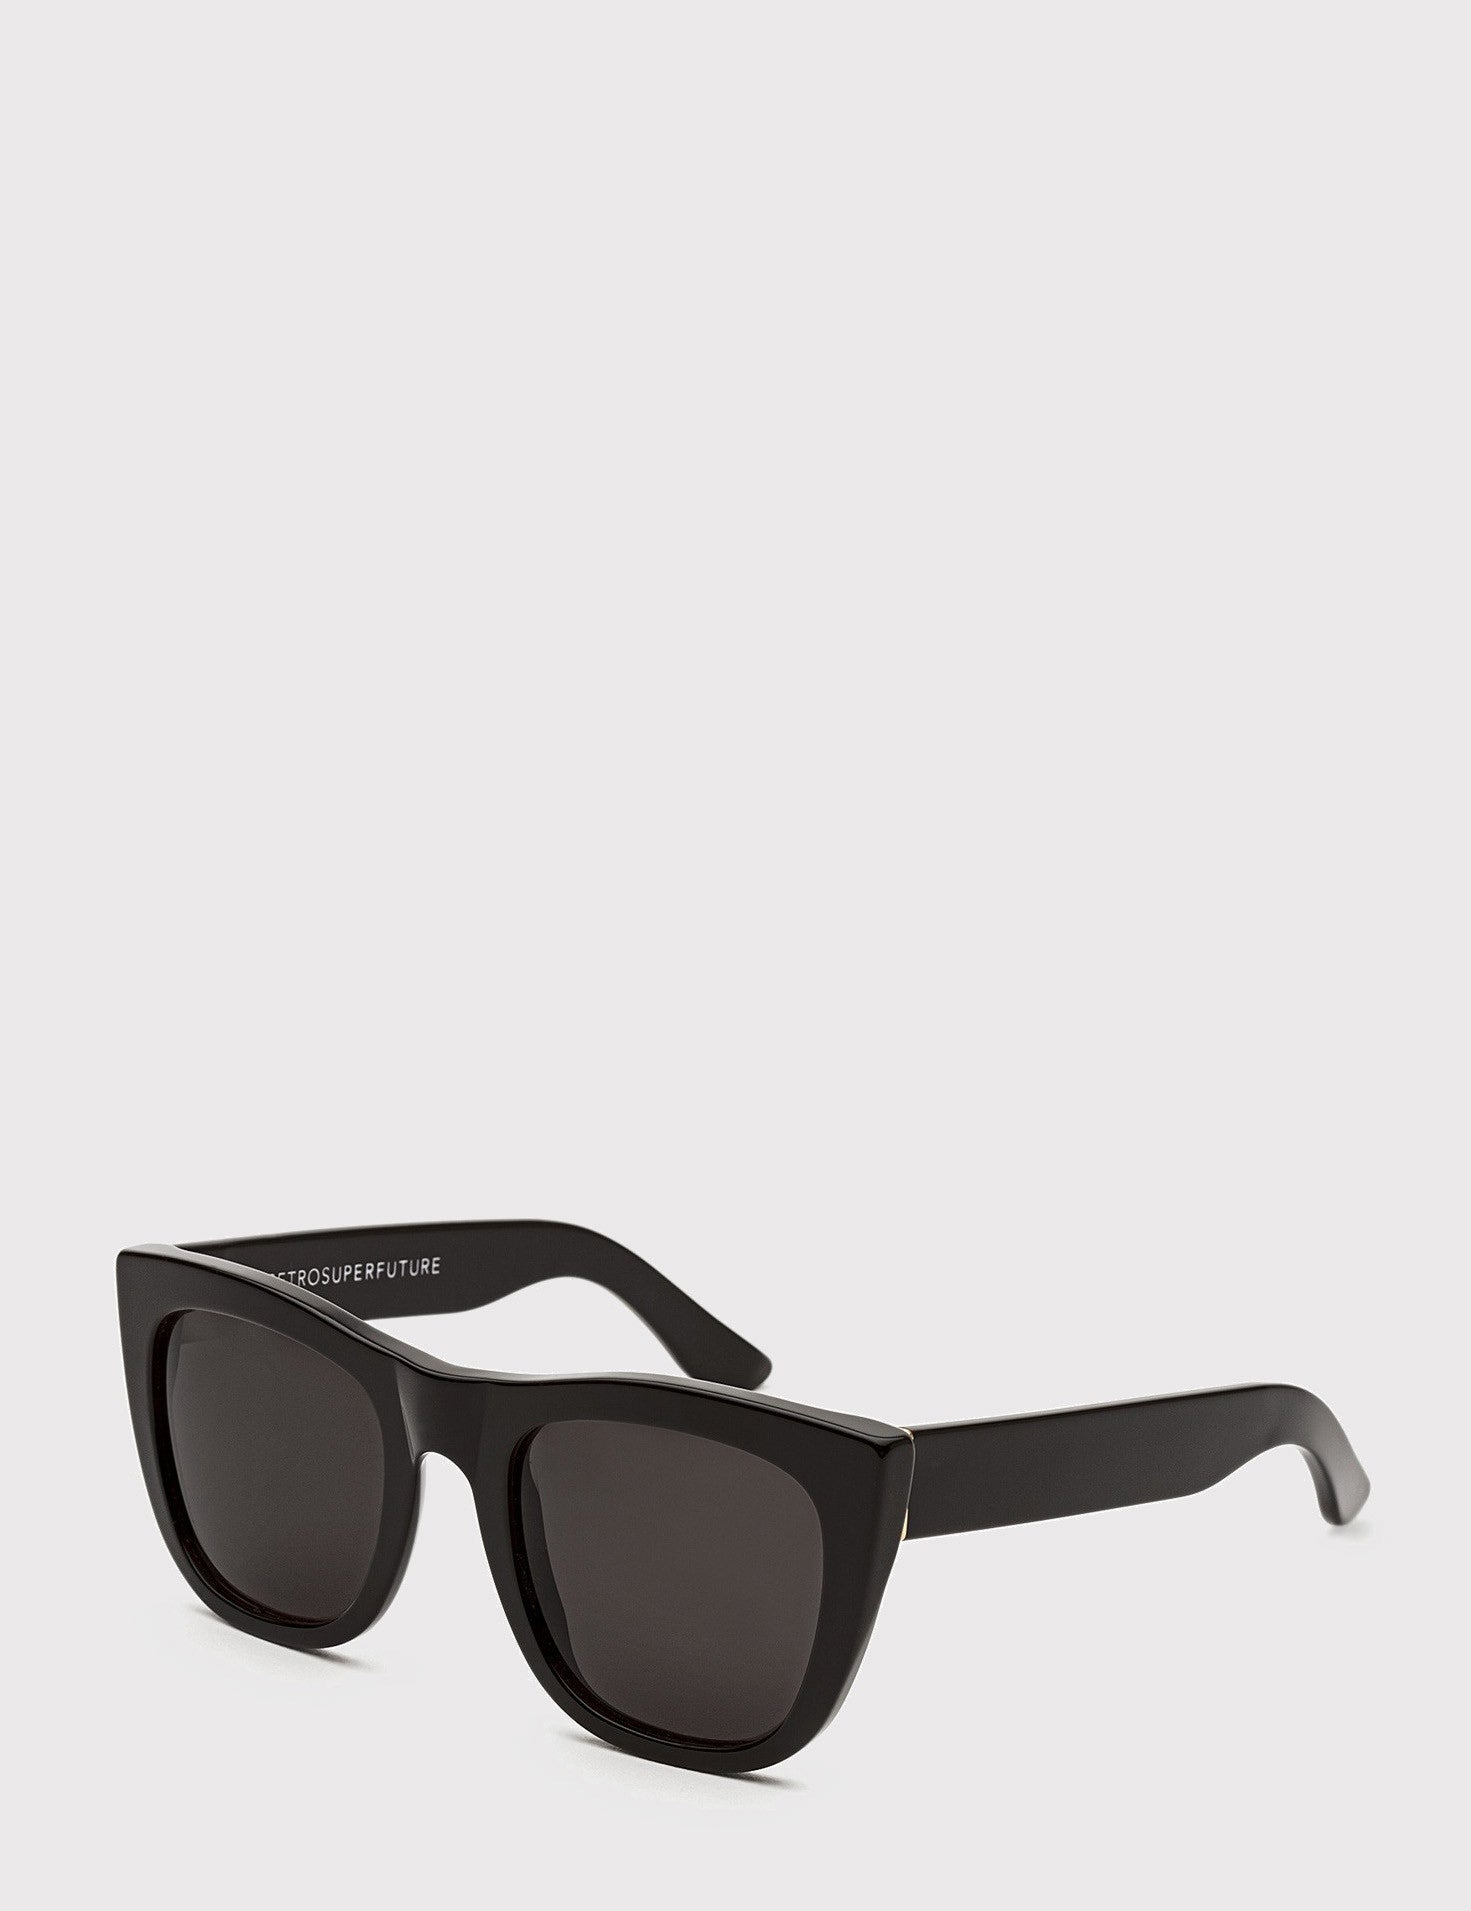 Super Gals Sunglasses - Black